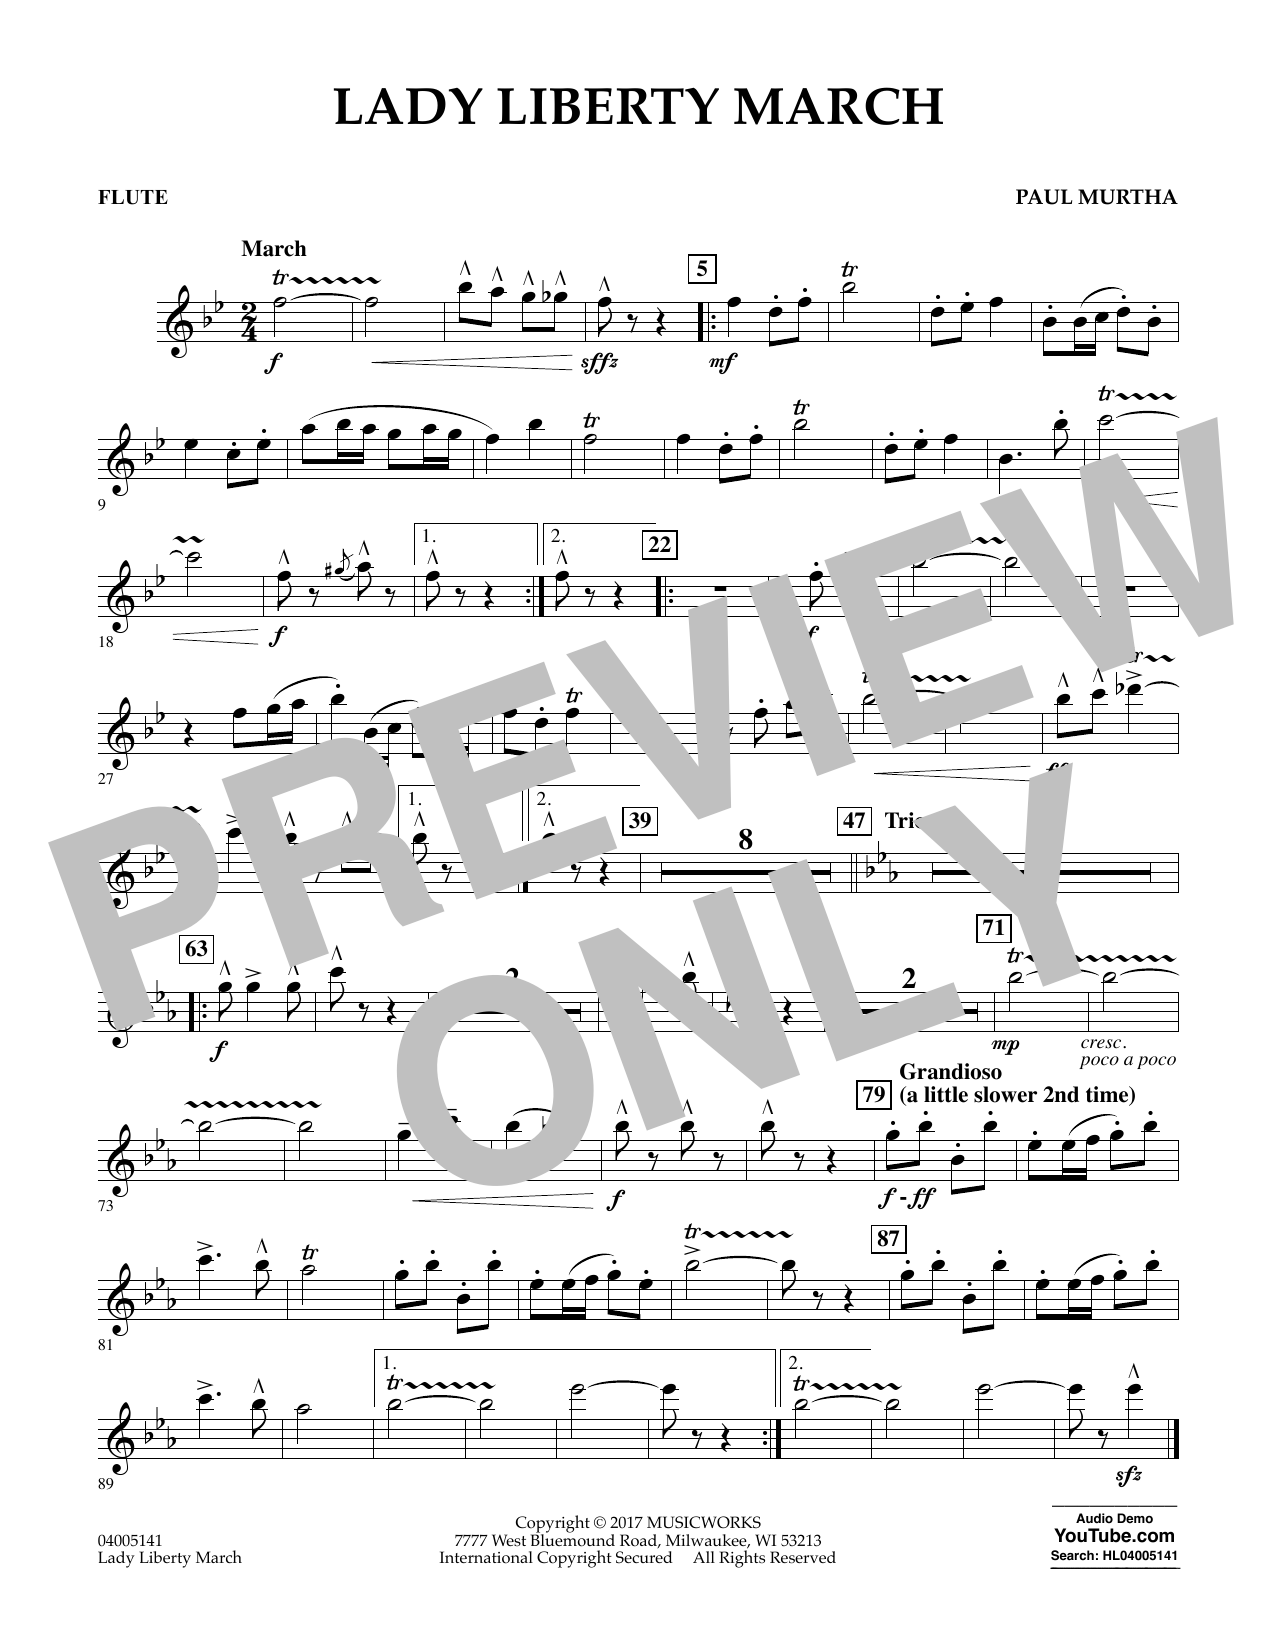 Paul Murtha Lady Liberty March - Flute sheet music notes and chords. Download Printable PDF.